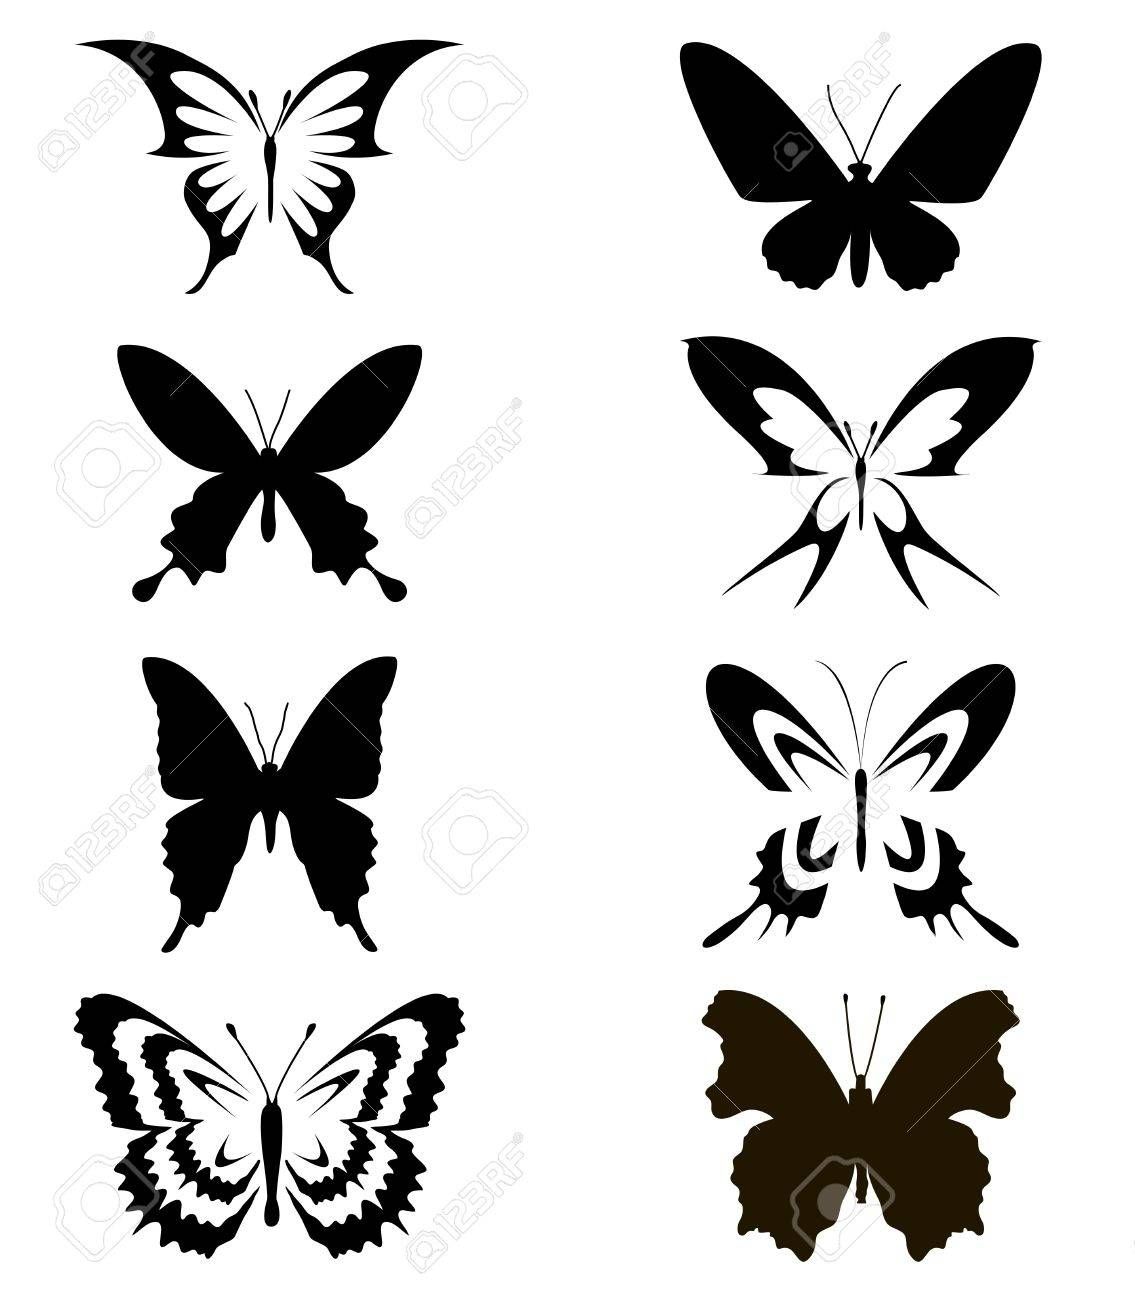 Black butterfly symbolism images symbol and sign ideas white butterfly symbolism images symbol and sign ideas black butterflies get to know the symbolism and biocorpaavc